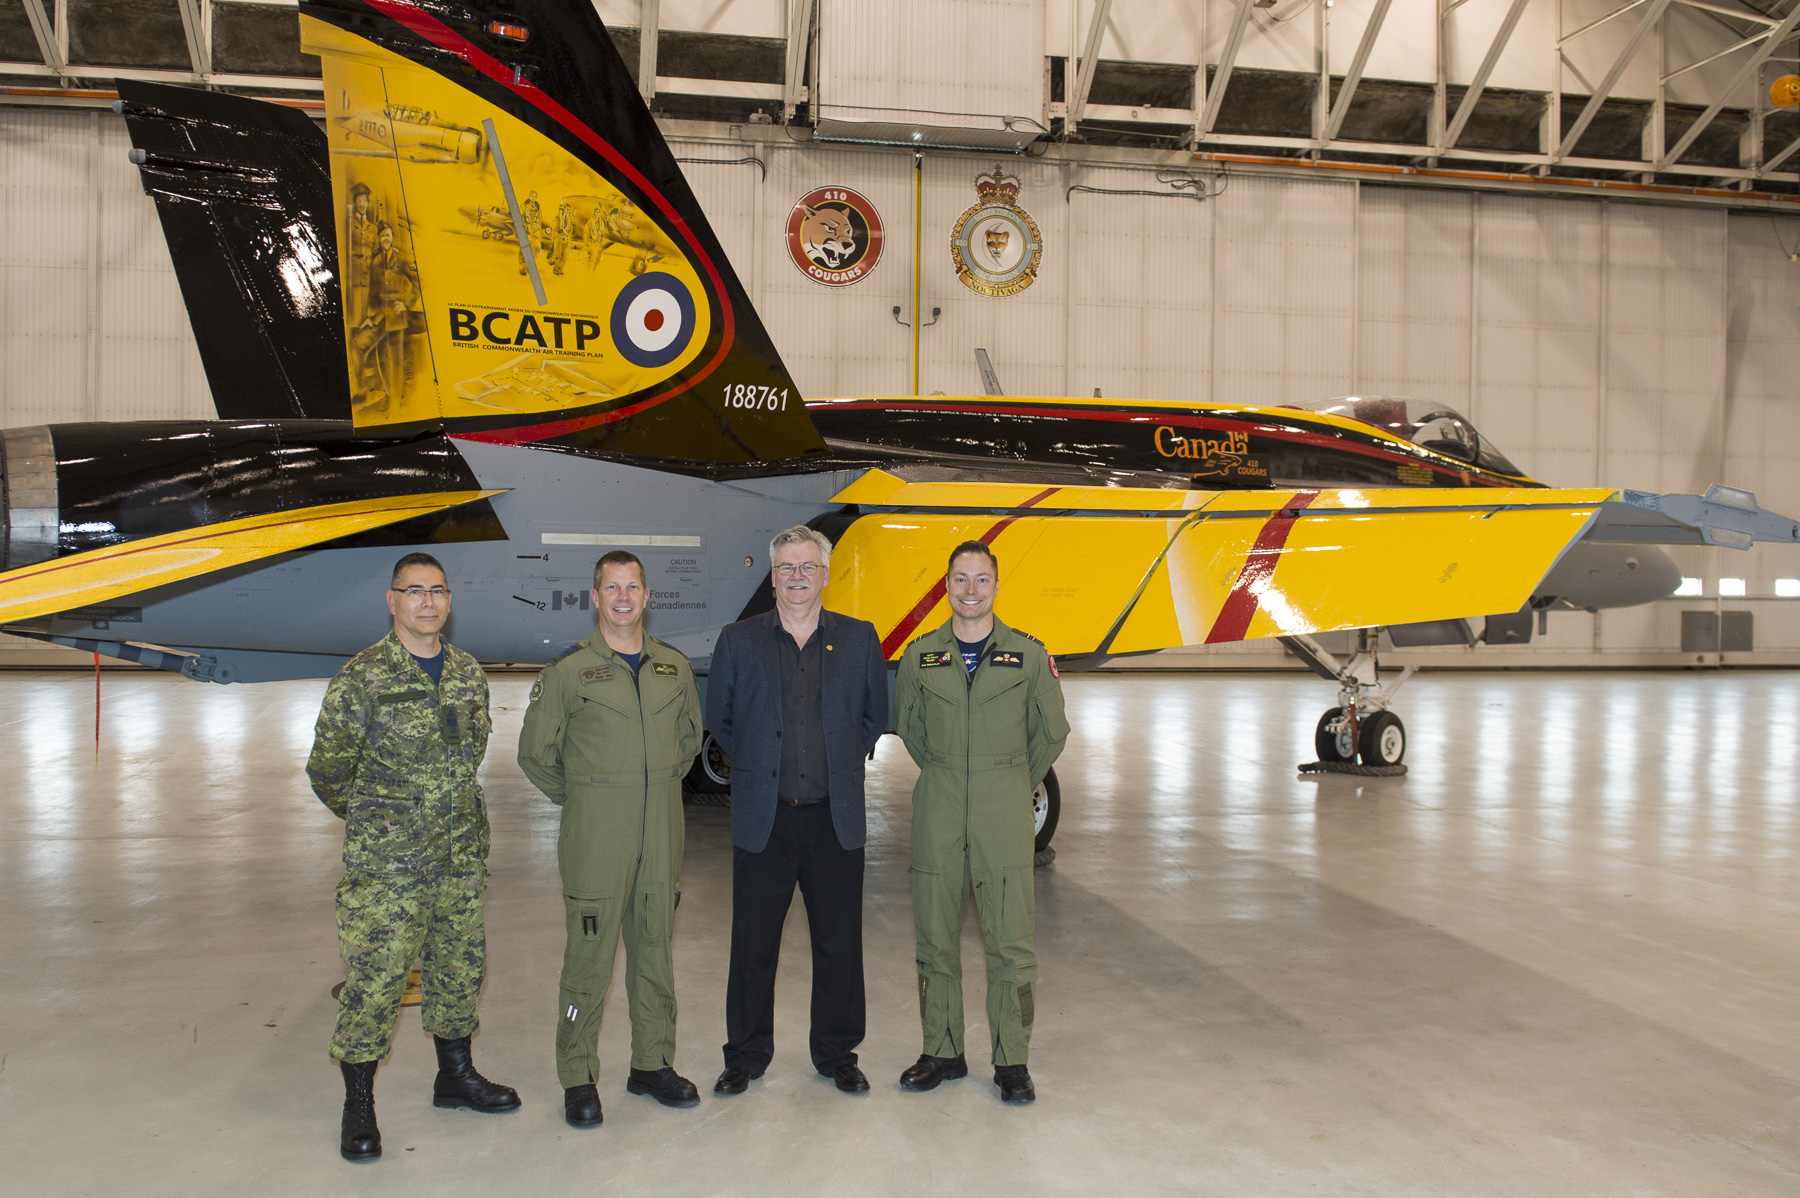 (From left to right) Chief Warrant Officer Alain Roy, 4 Wing Cold Lake's chief warrant officer, Colonel Eric Kenny, commander of 4 Wing; Mr. Jim Belliveau, design and paint crew lead; and Captain Ryan Kean, the CF-18 Demonstration Hornet pilot, during the Hornet's unveiling ceremony held at 4 Wing Cold Lake, Alberta, on April 5, 2016. PHOTO: Corporal Bryan Carter, CK04-2016-0278-004